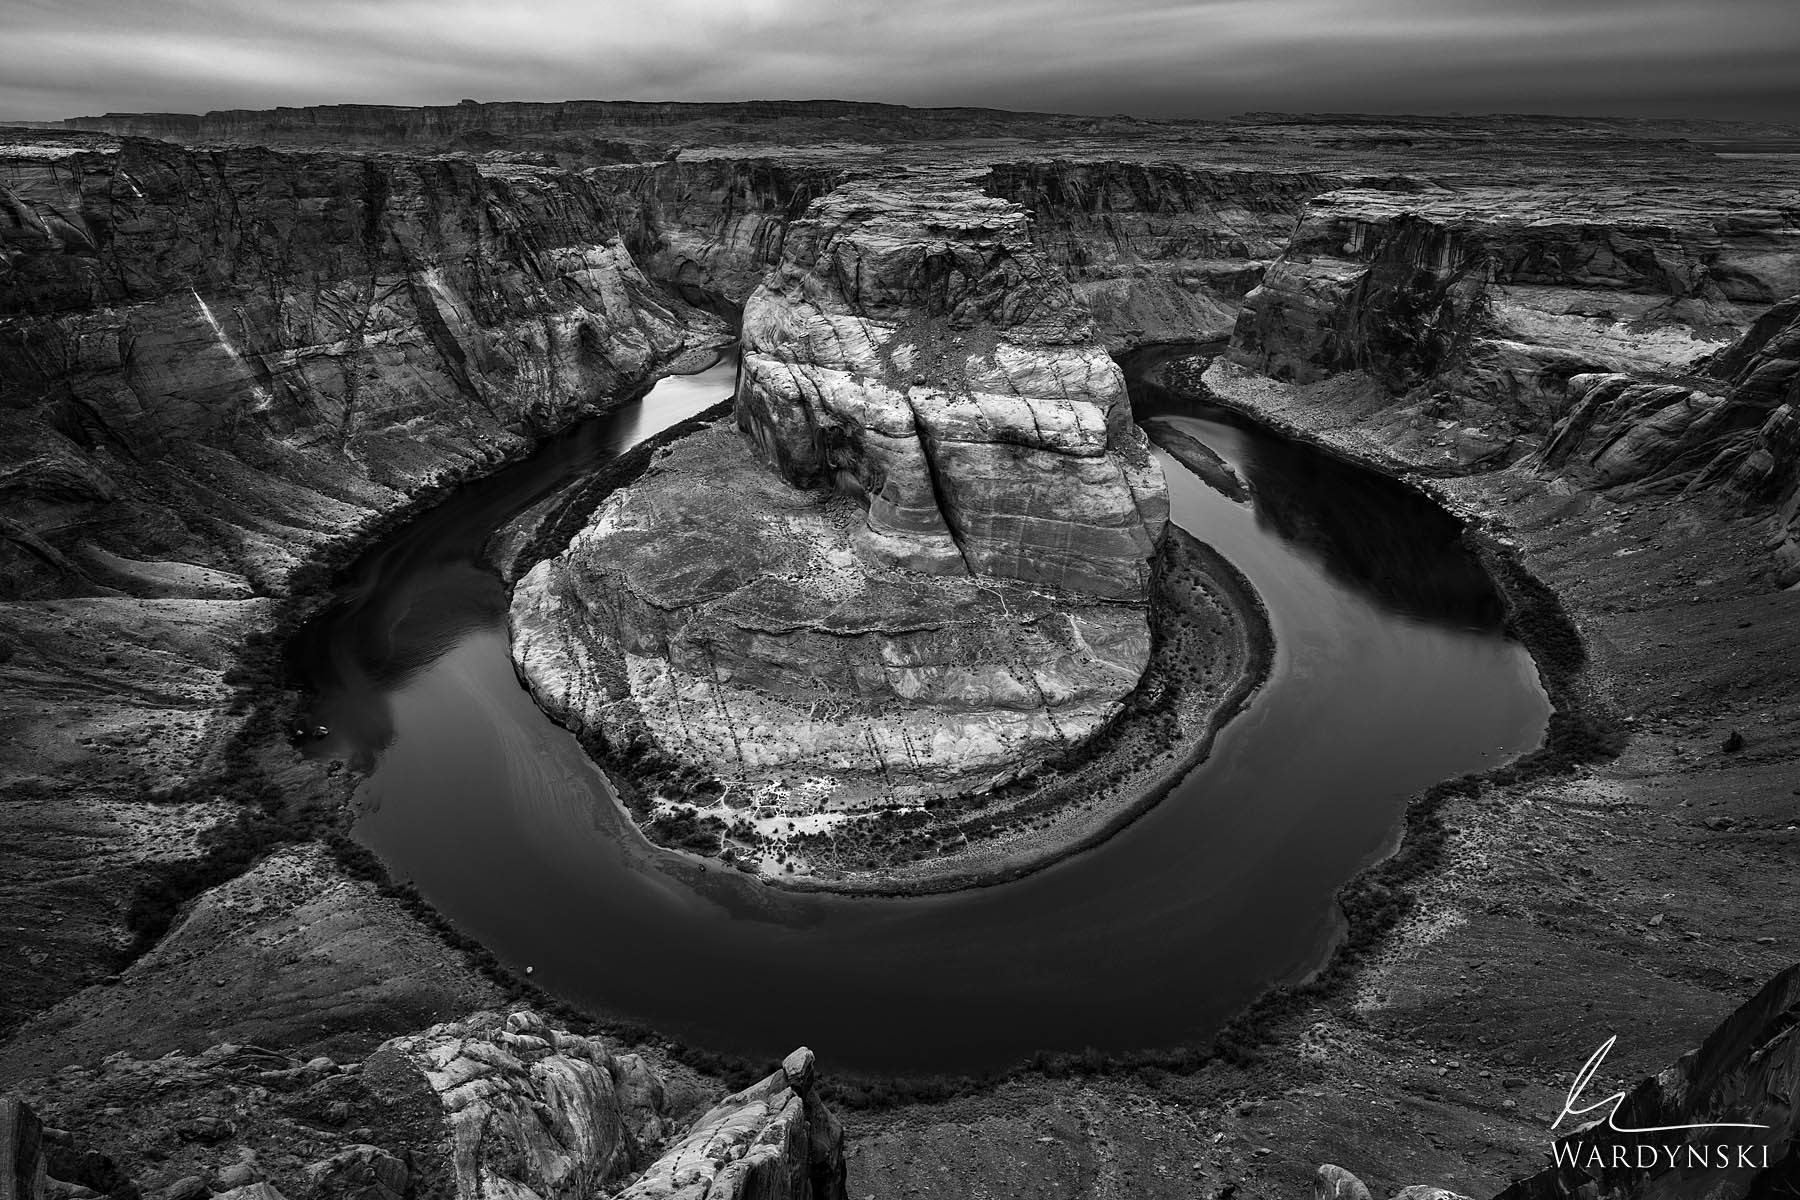 Black and White Fine Art Print | Limited Edition of 100 Sometimes nature will produce something so spectacular that is almost...